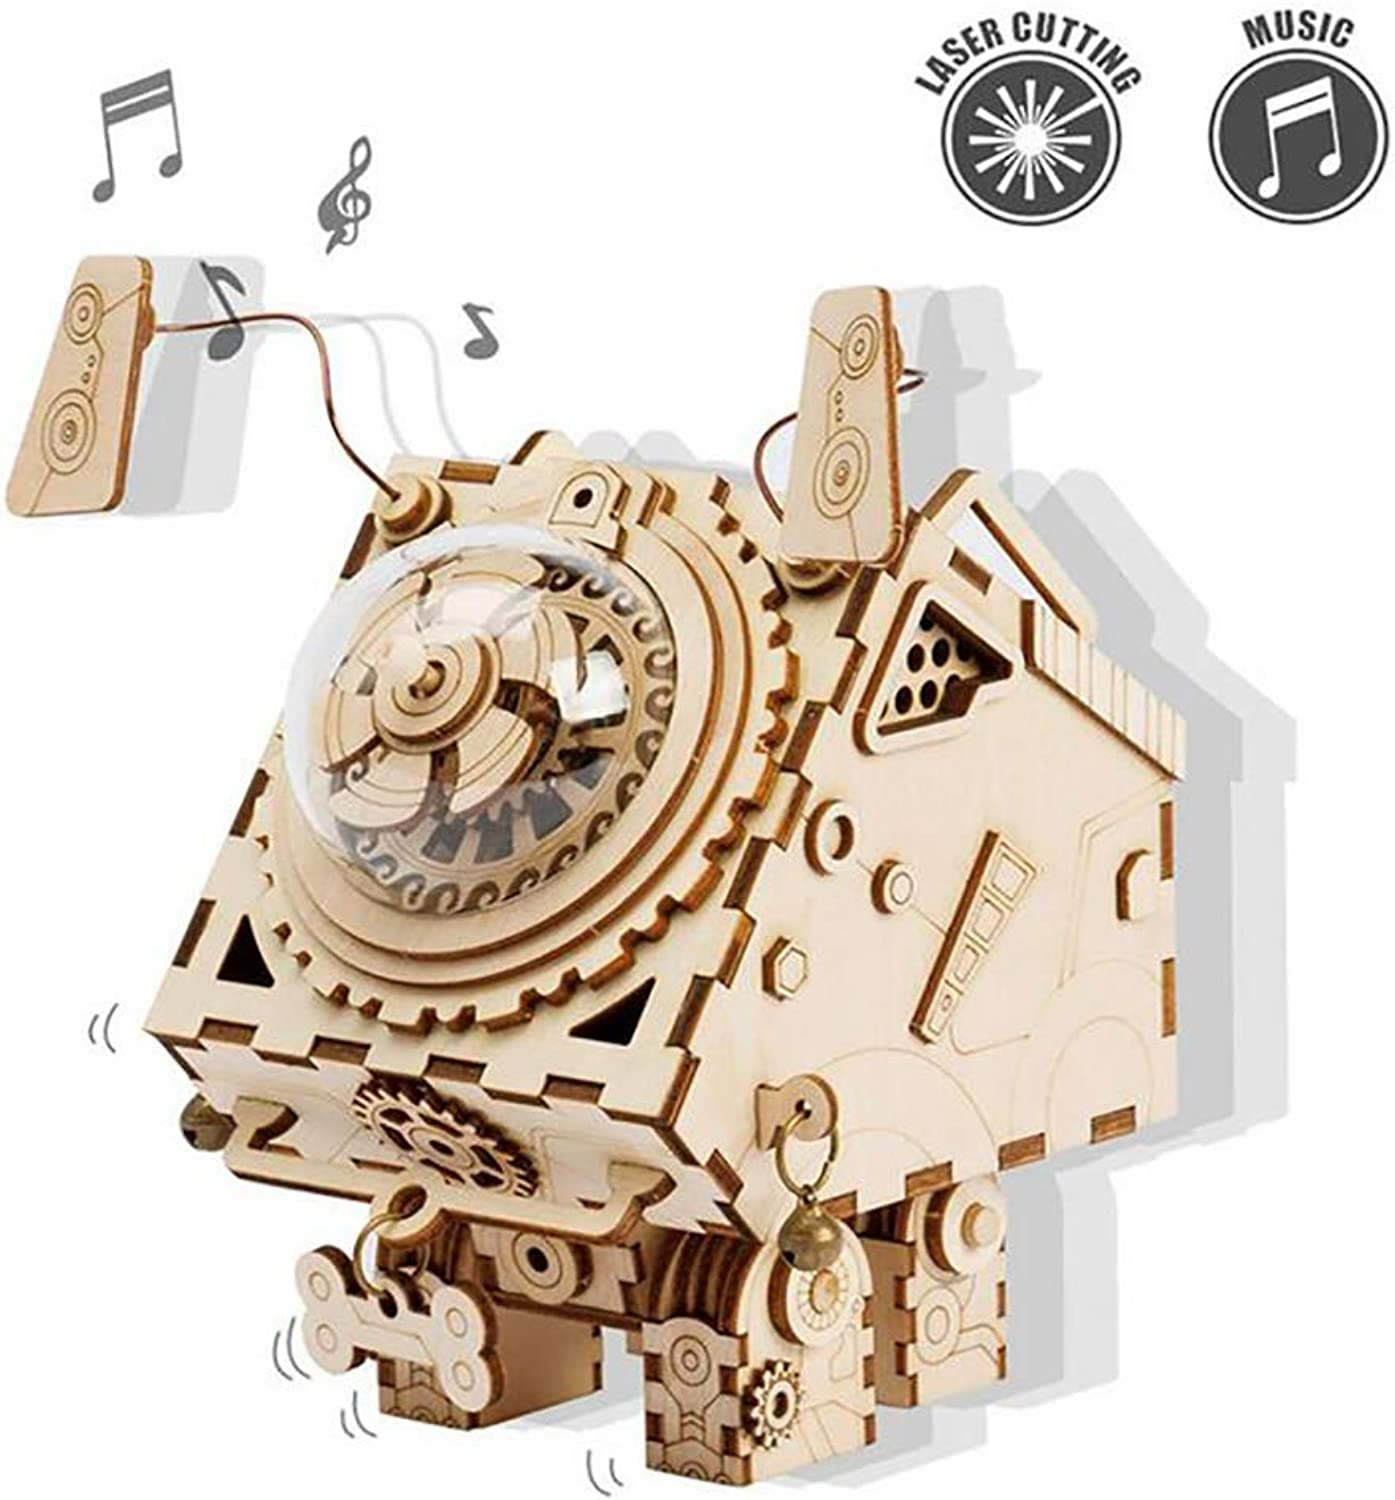 Laser Cut Wooden 3D Robot dog Puzzles, Build Your Own Wooden Music Box Craft Kits, Steampunk Christmas Birthday Valentine's Day